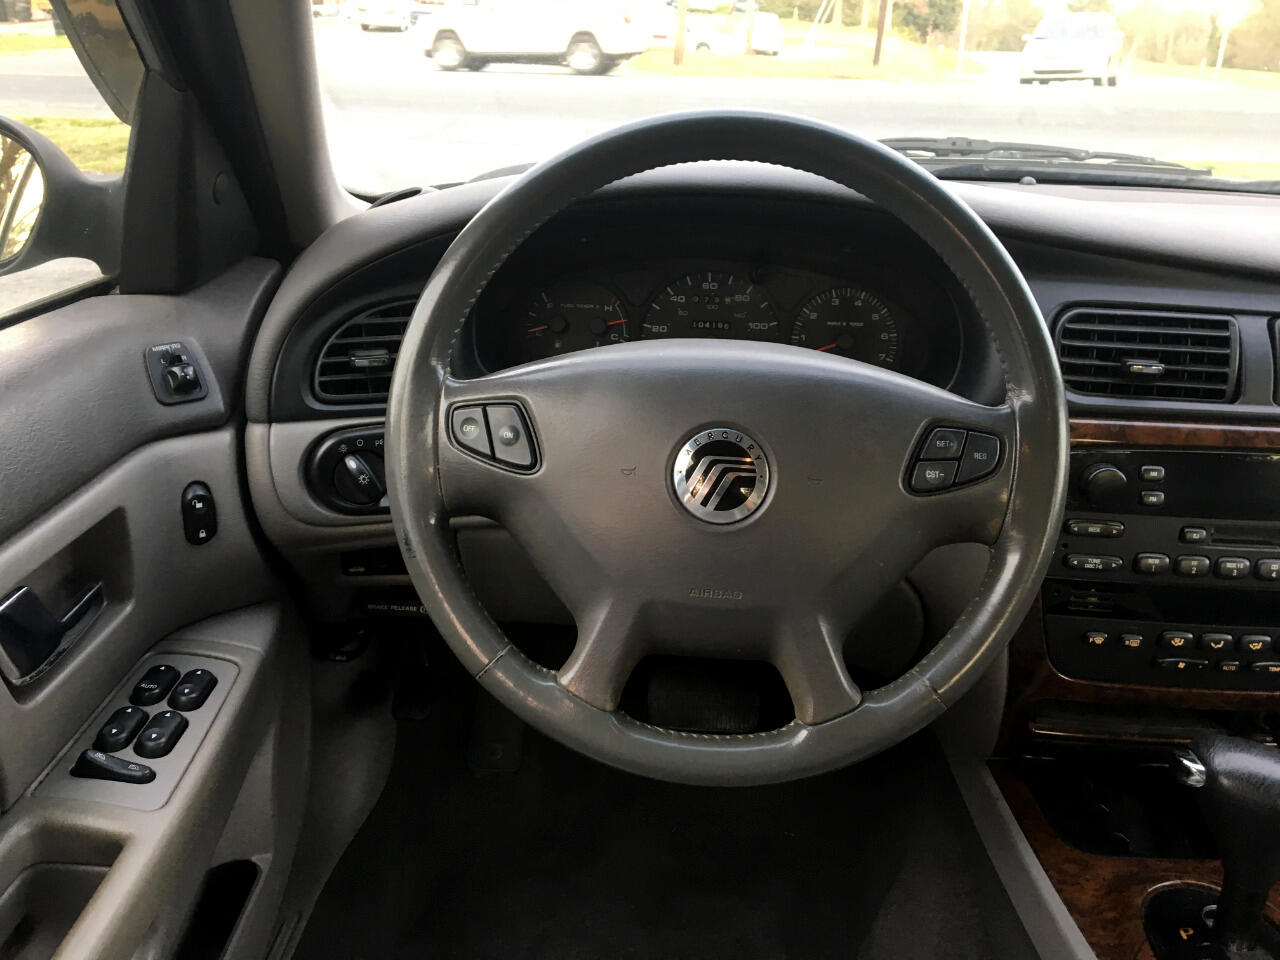 2001 Mercury Sable LS Premium